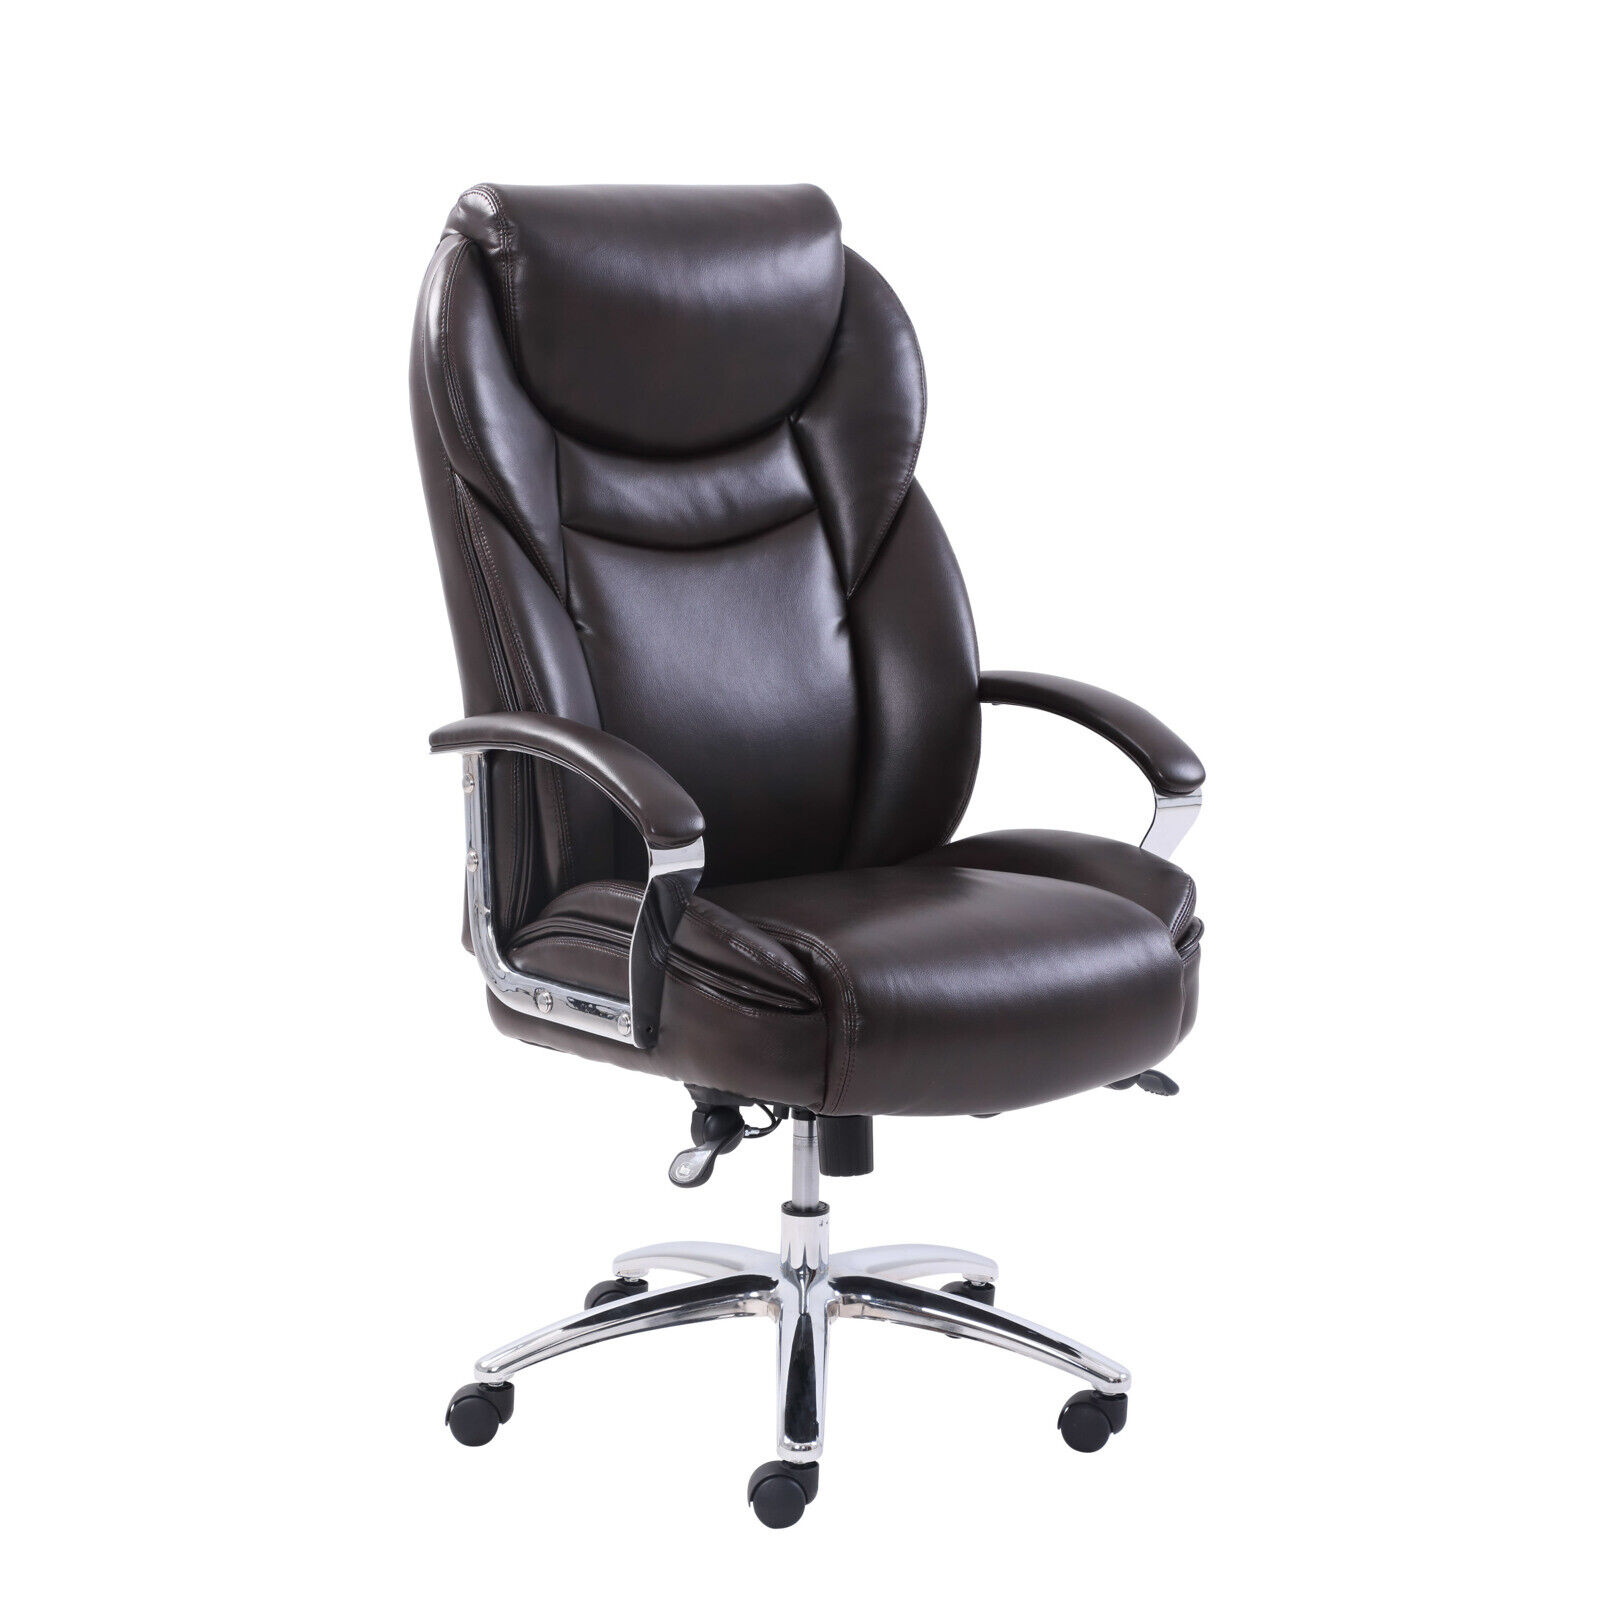 Serta Works Ergonomic Executive Office Chair with Back in Motion Technology